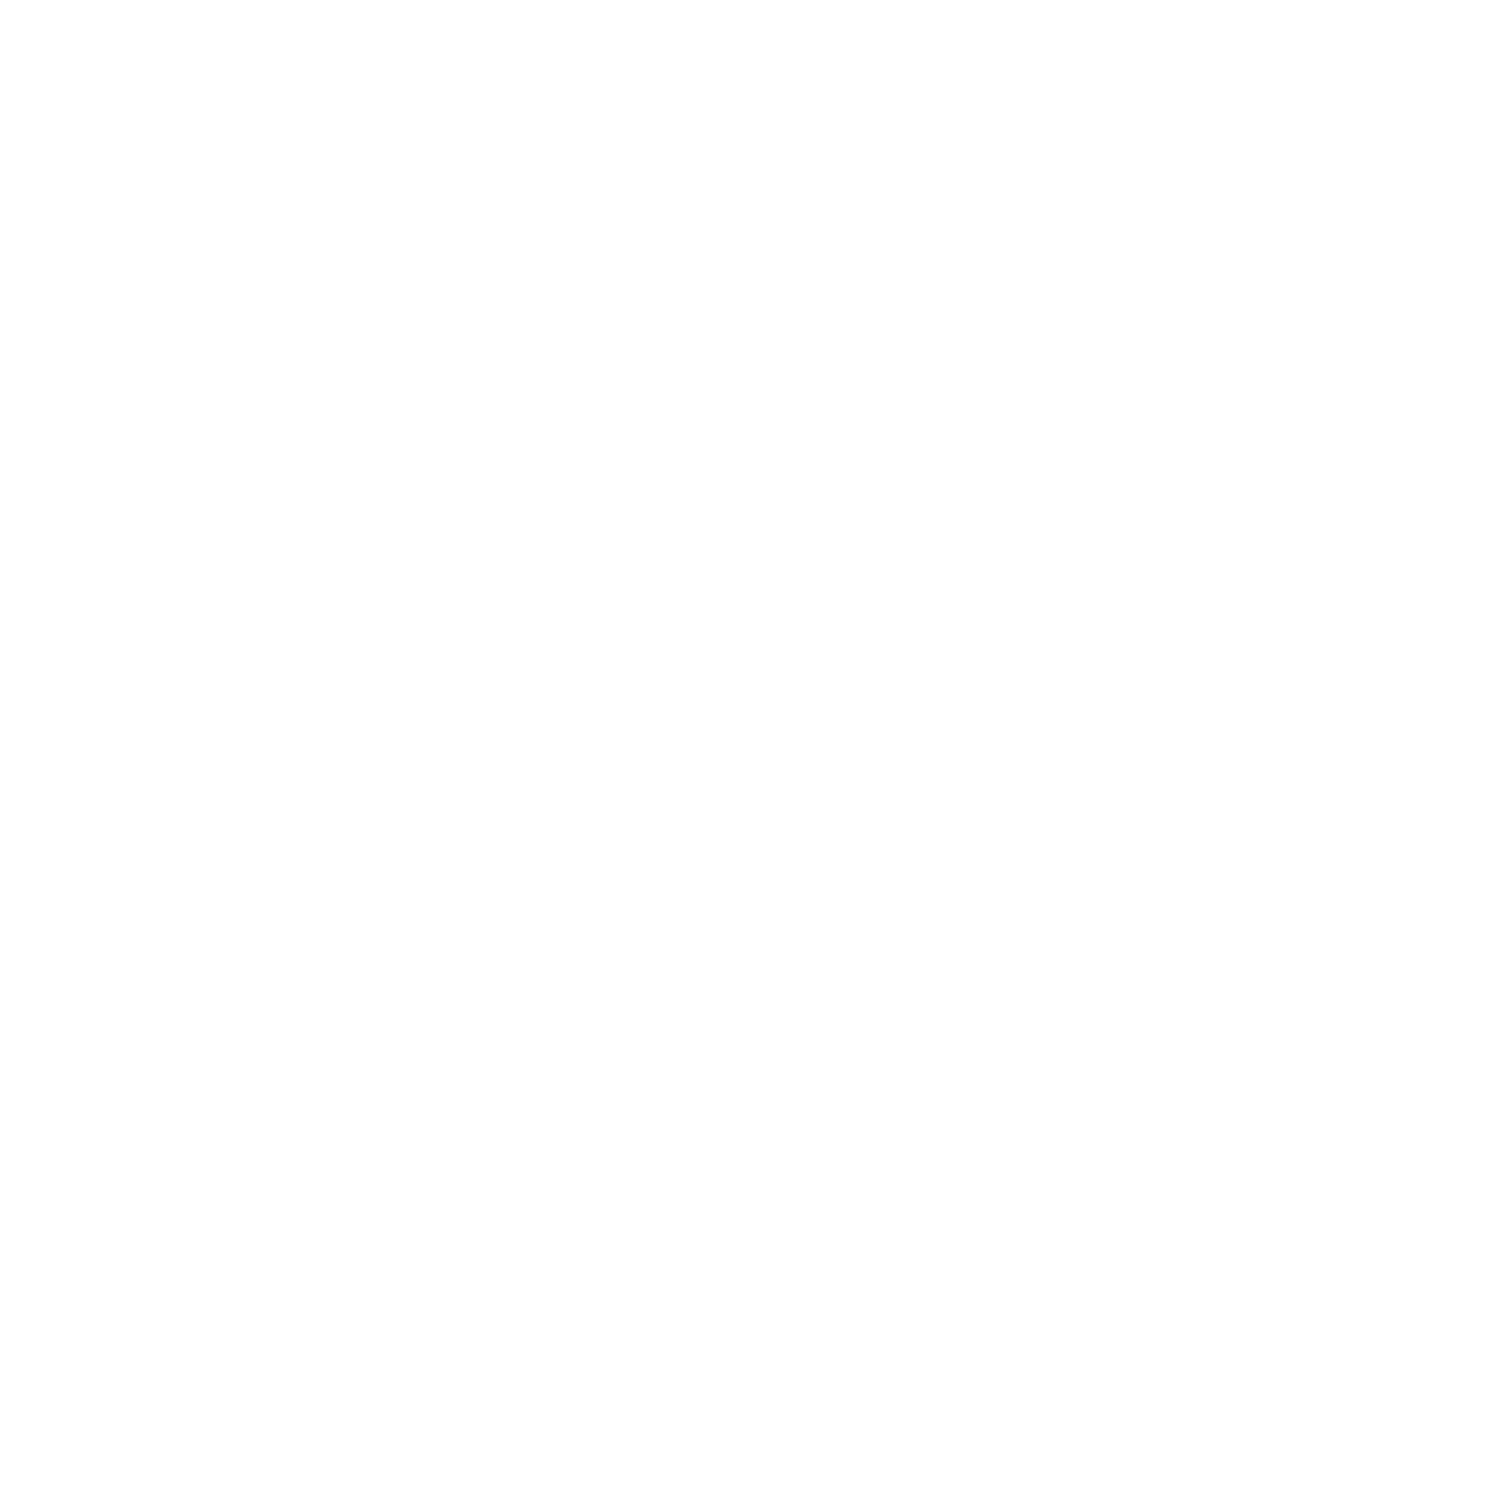 LIVING LEARNING COMMUNITIES AT DARTMOUTH